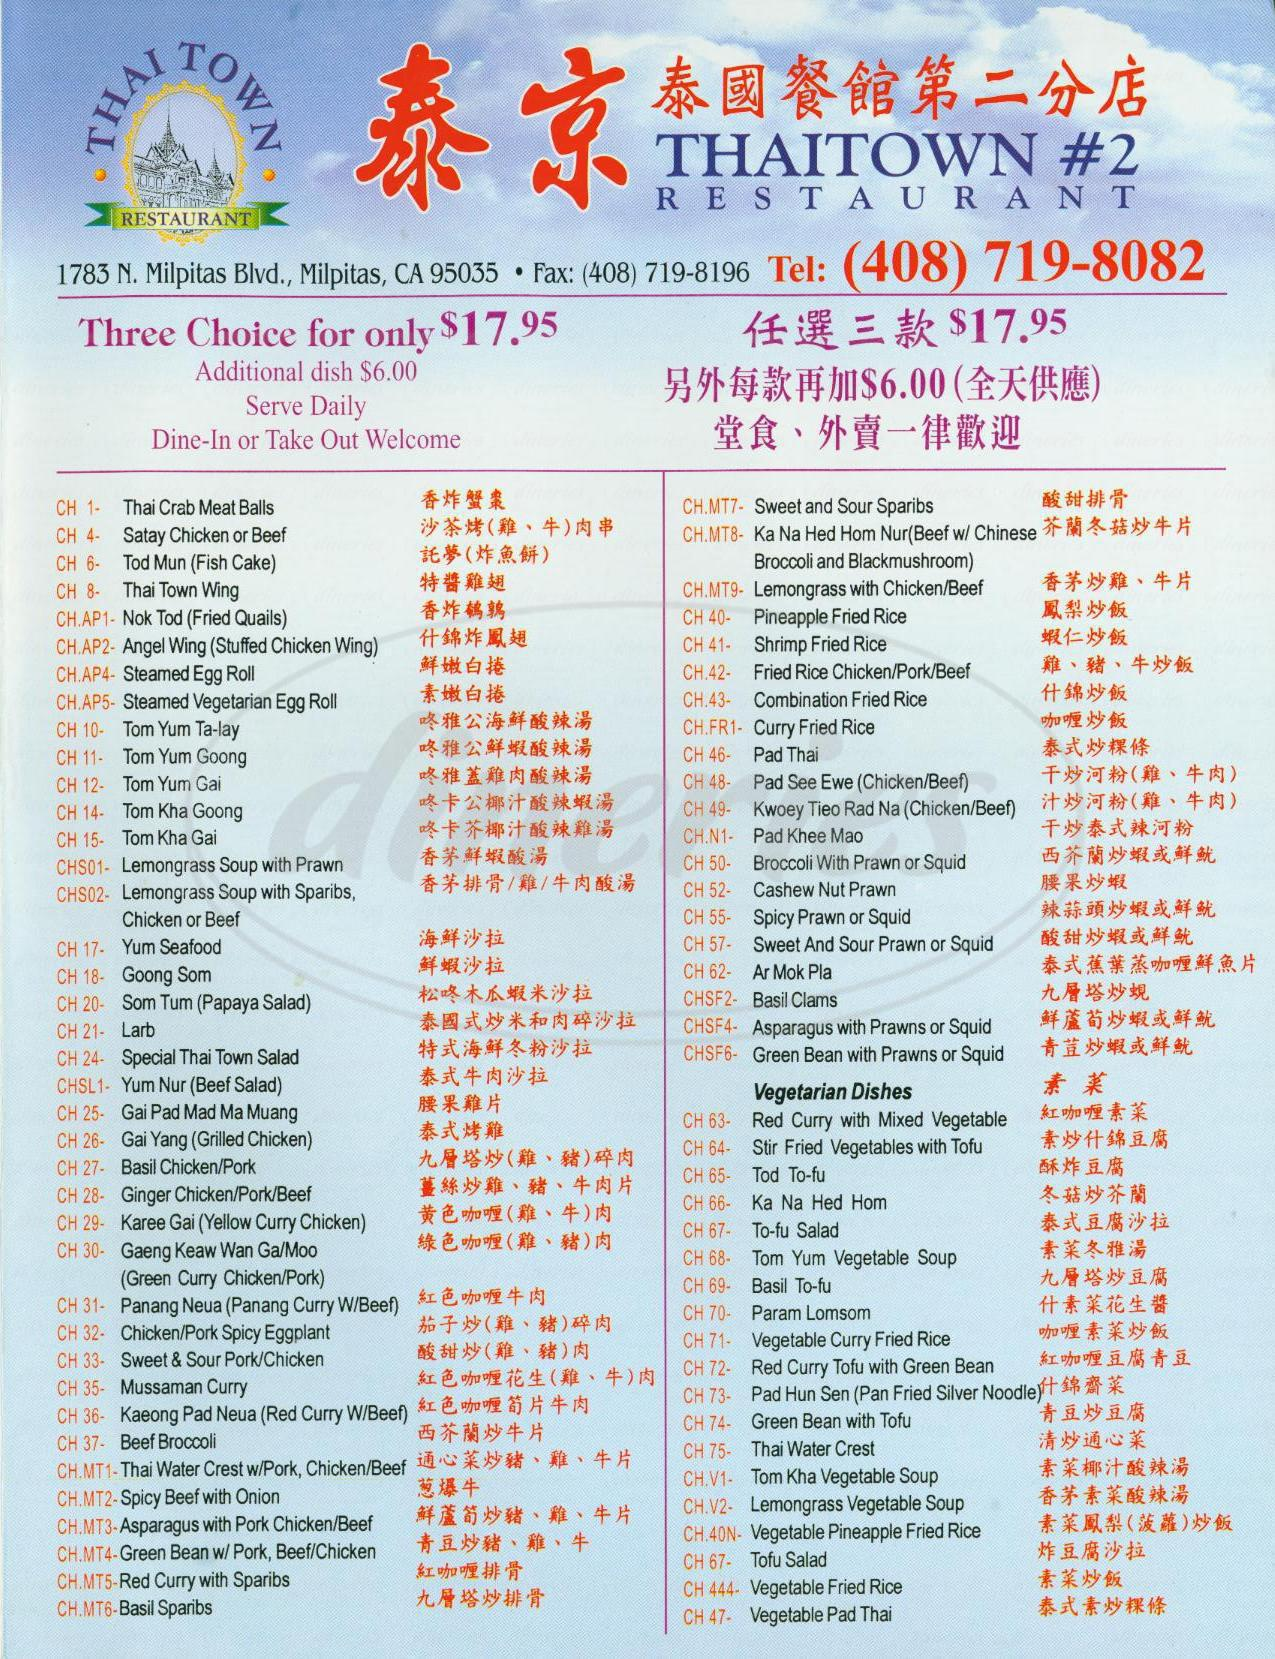 menu for Thai Town Restaurant 2